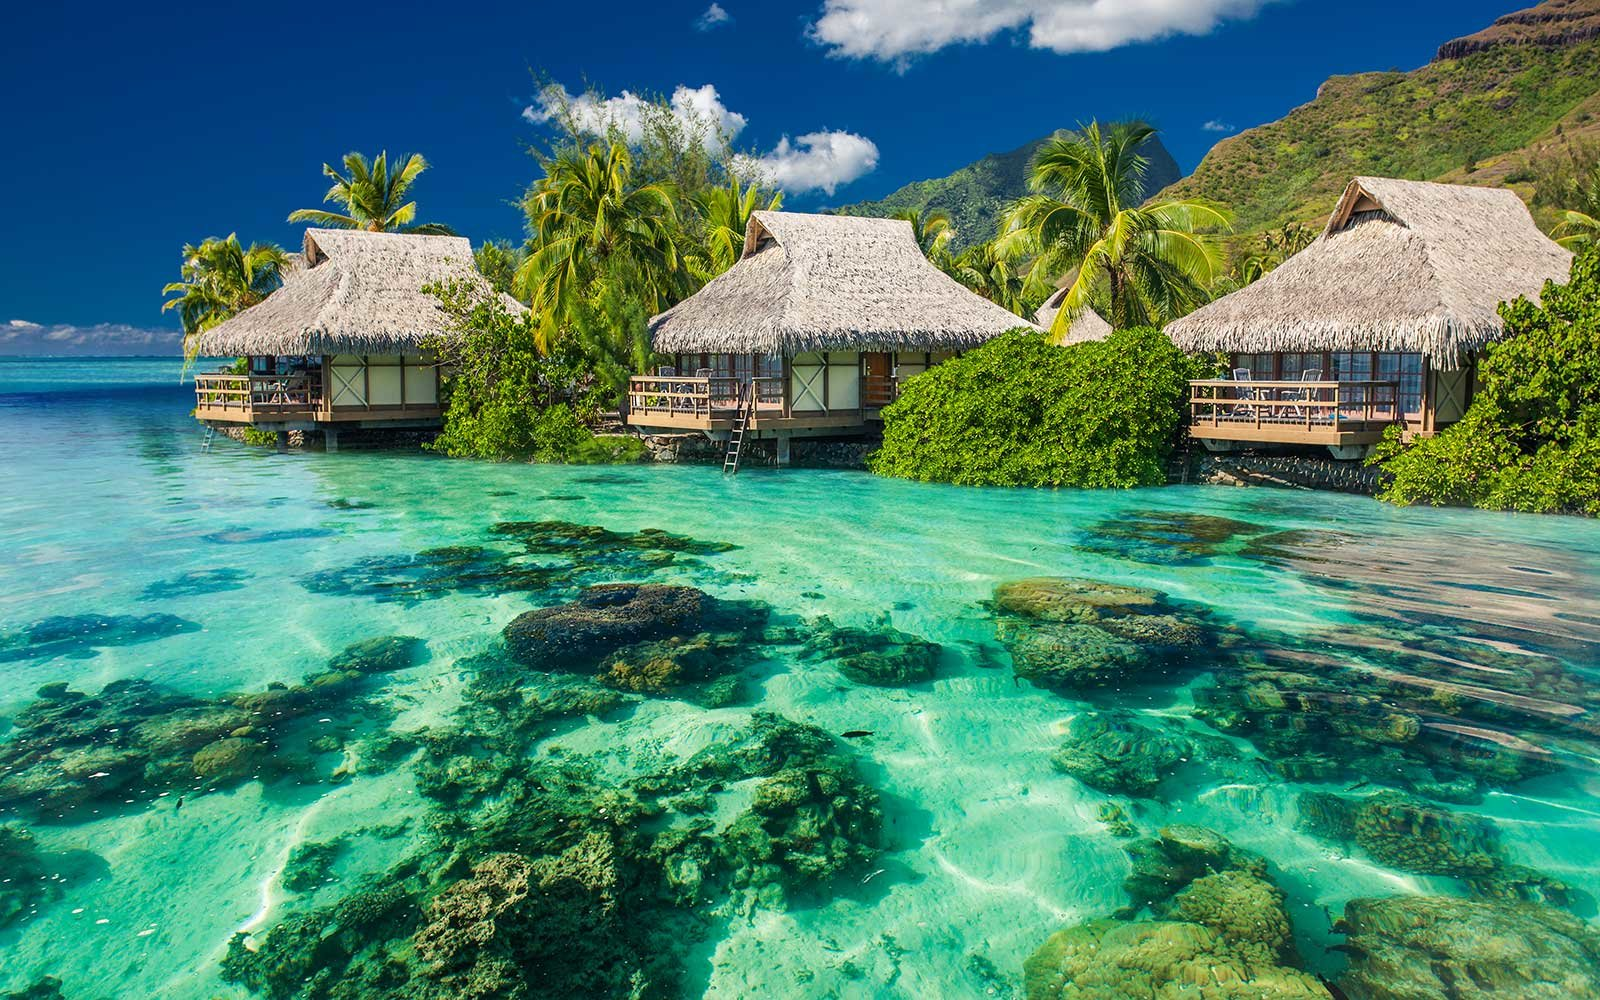 No. 4 Moorea in French Polynesia